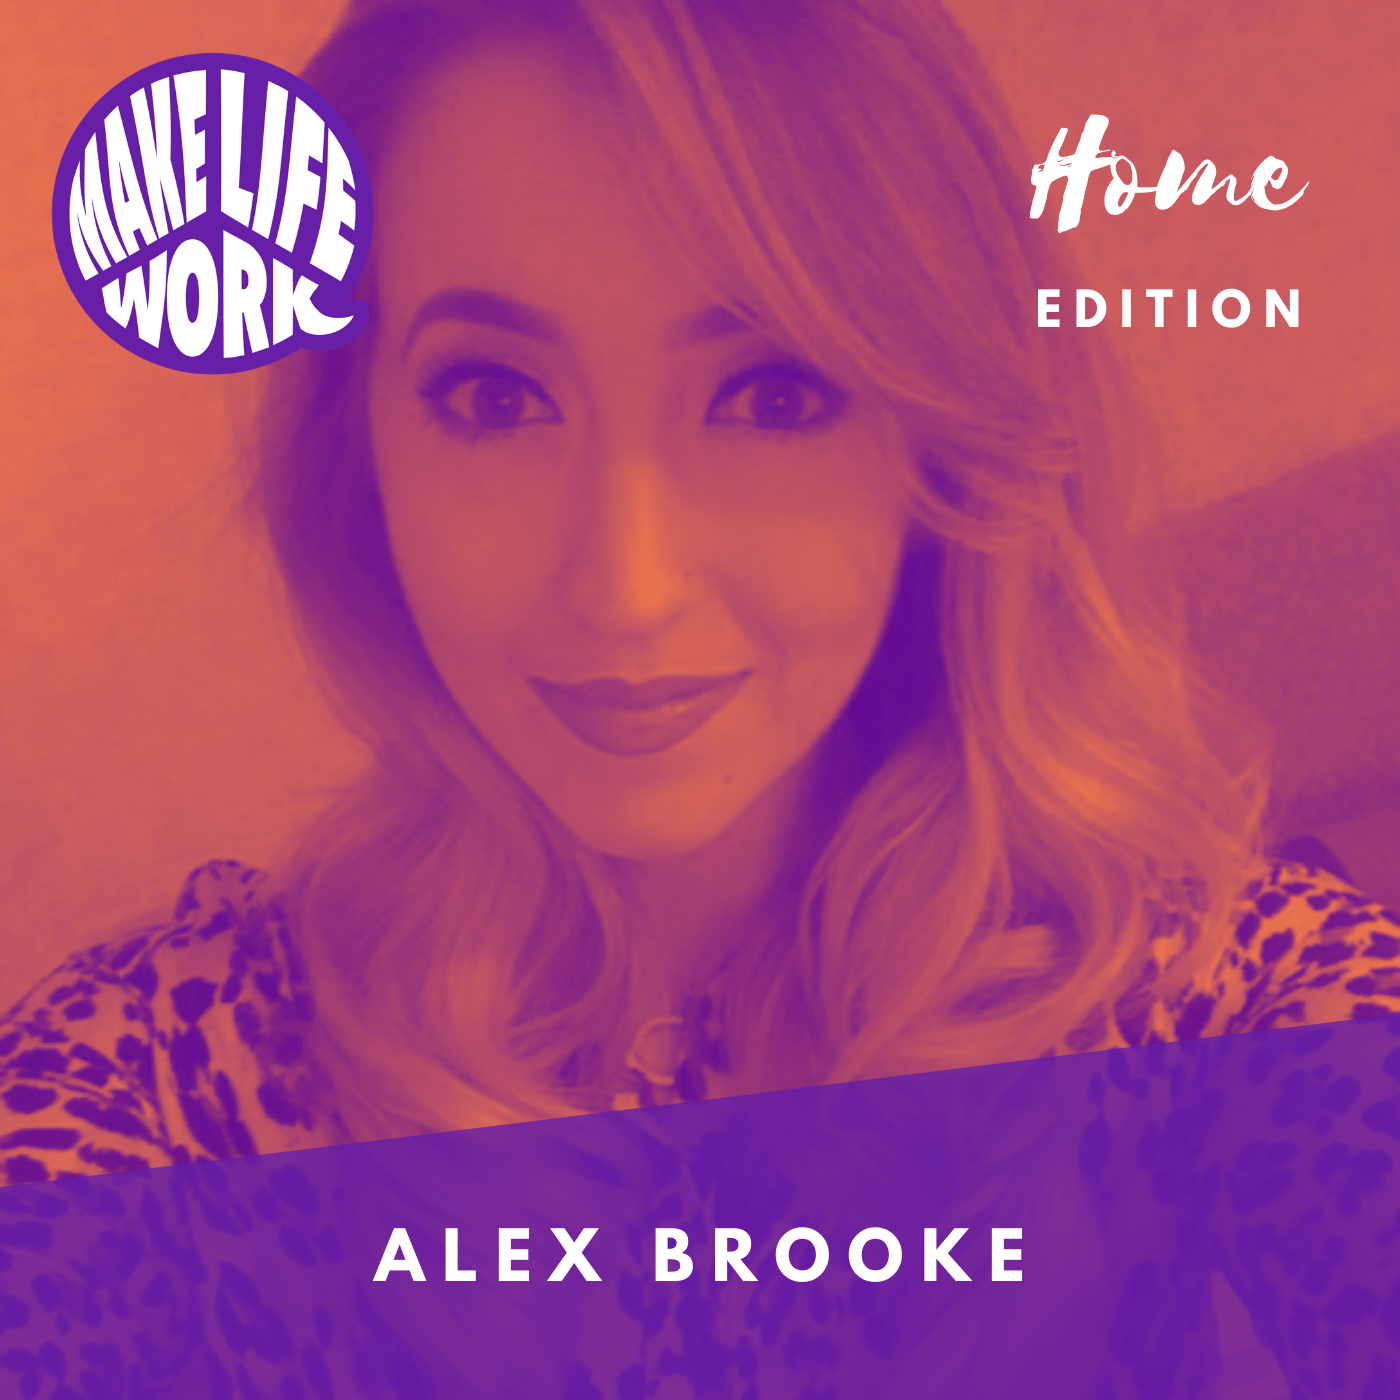 Make Life Work Home Edition with Alex Brooke